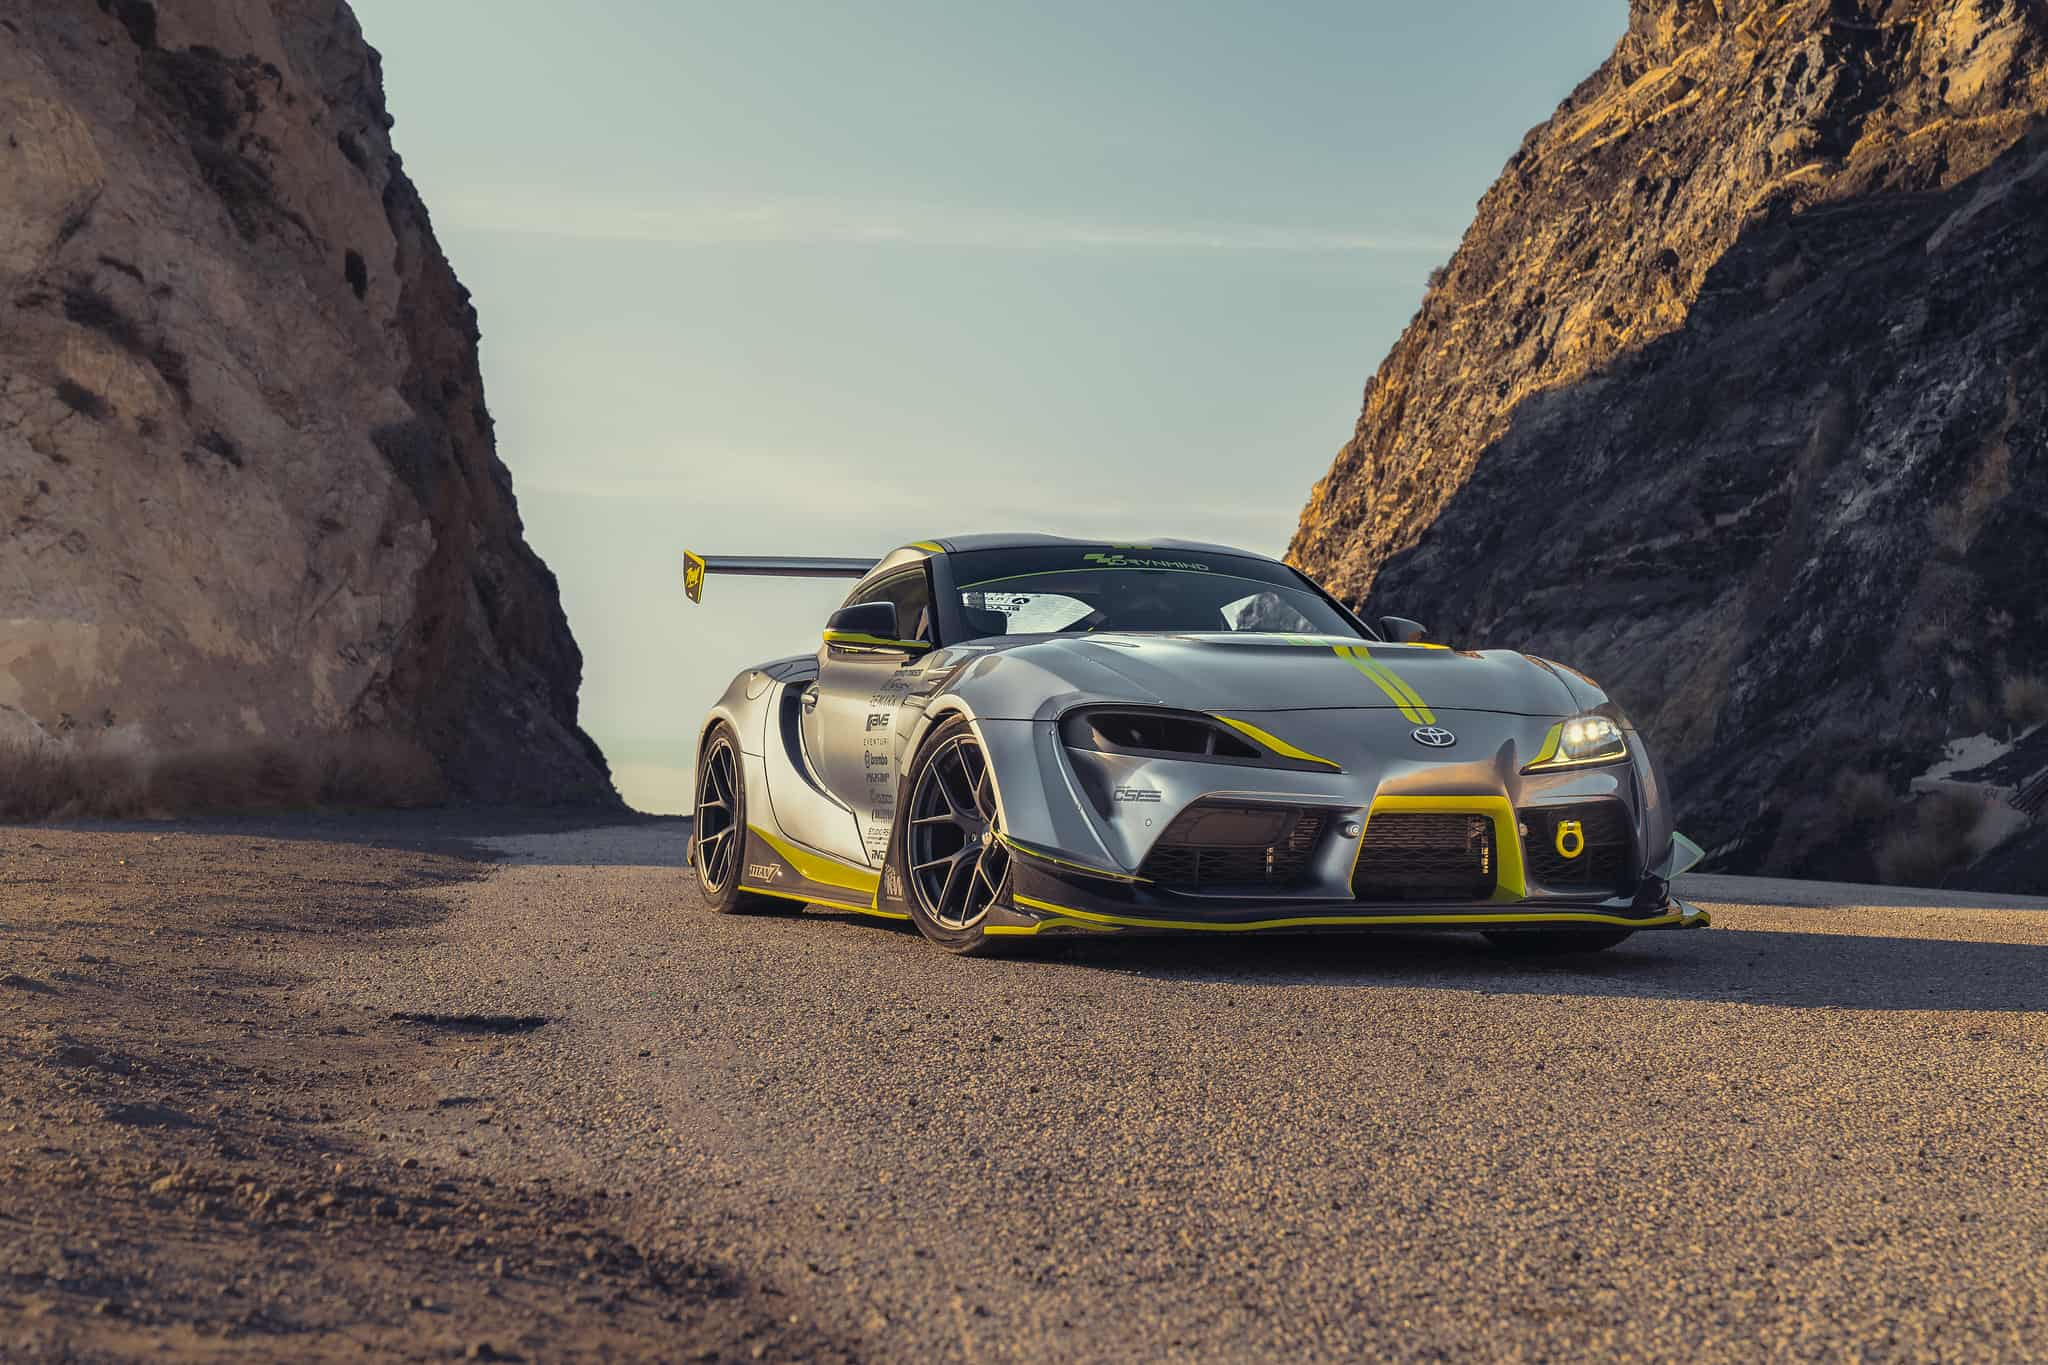 Toyota GR Supra Varis Widebody kit & Titan-7 wheels